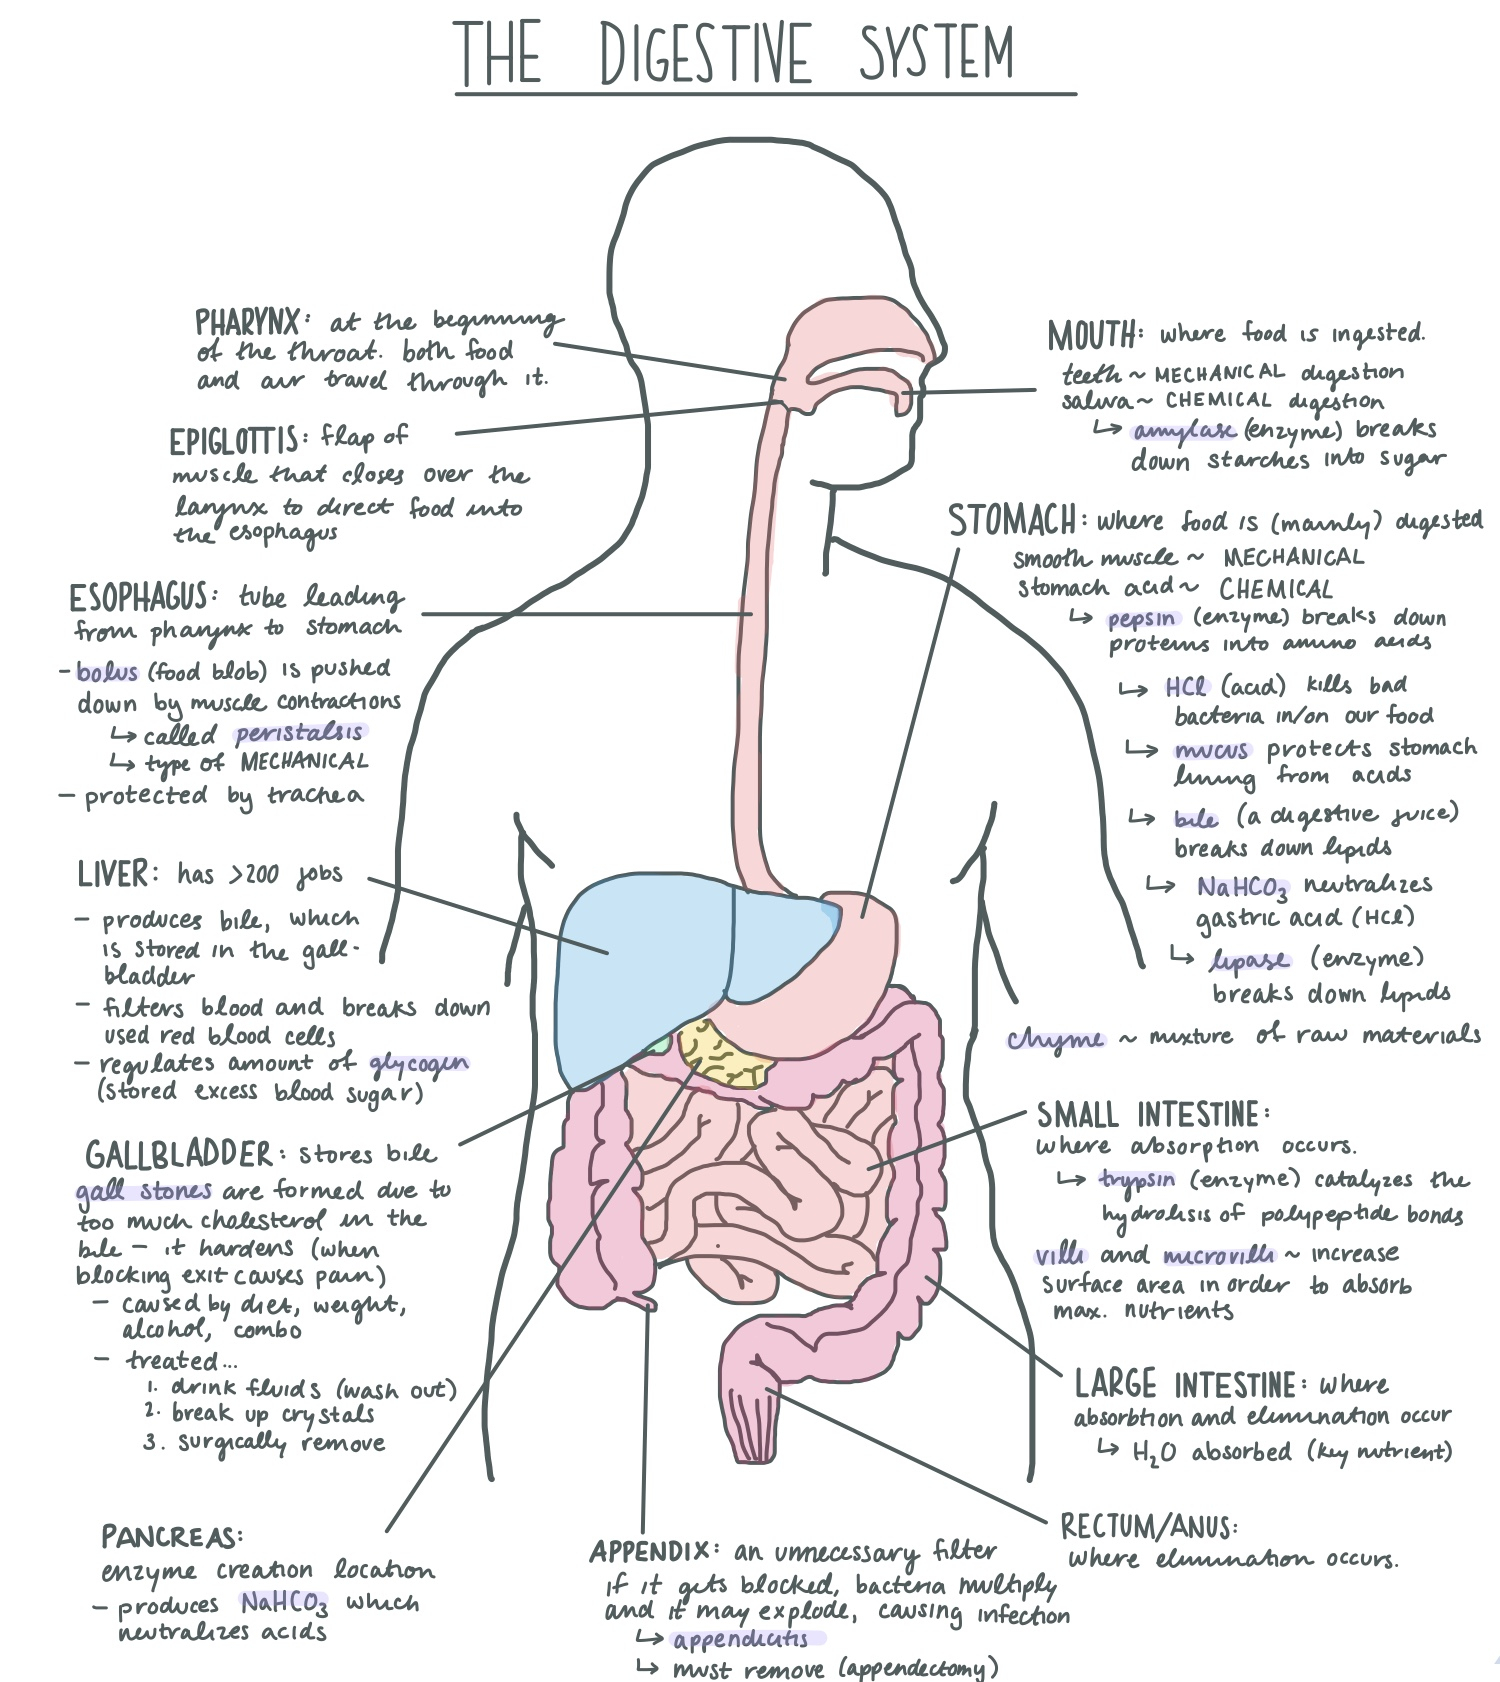 Digestive System Diagram Filedigestive System Diagram Wikimedia Commons